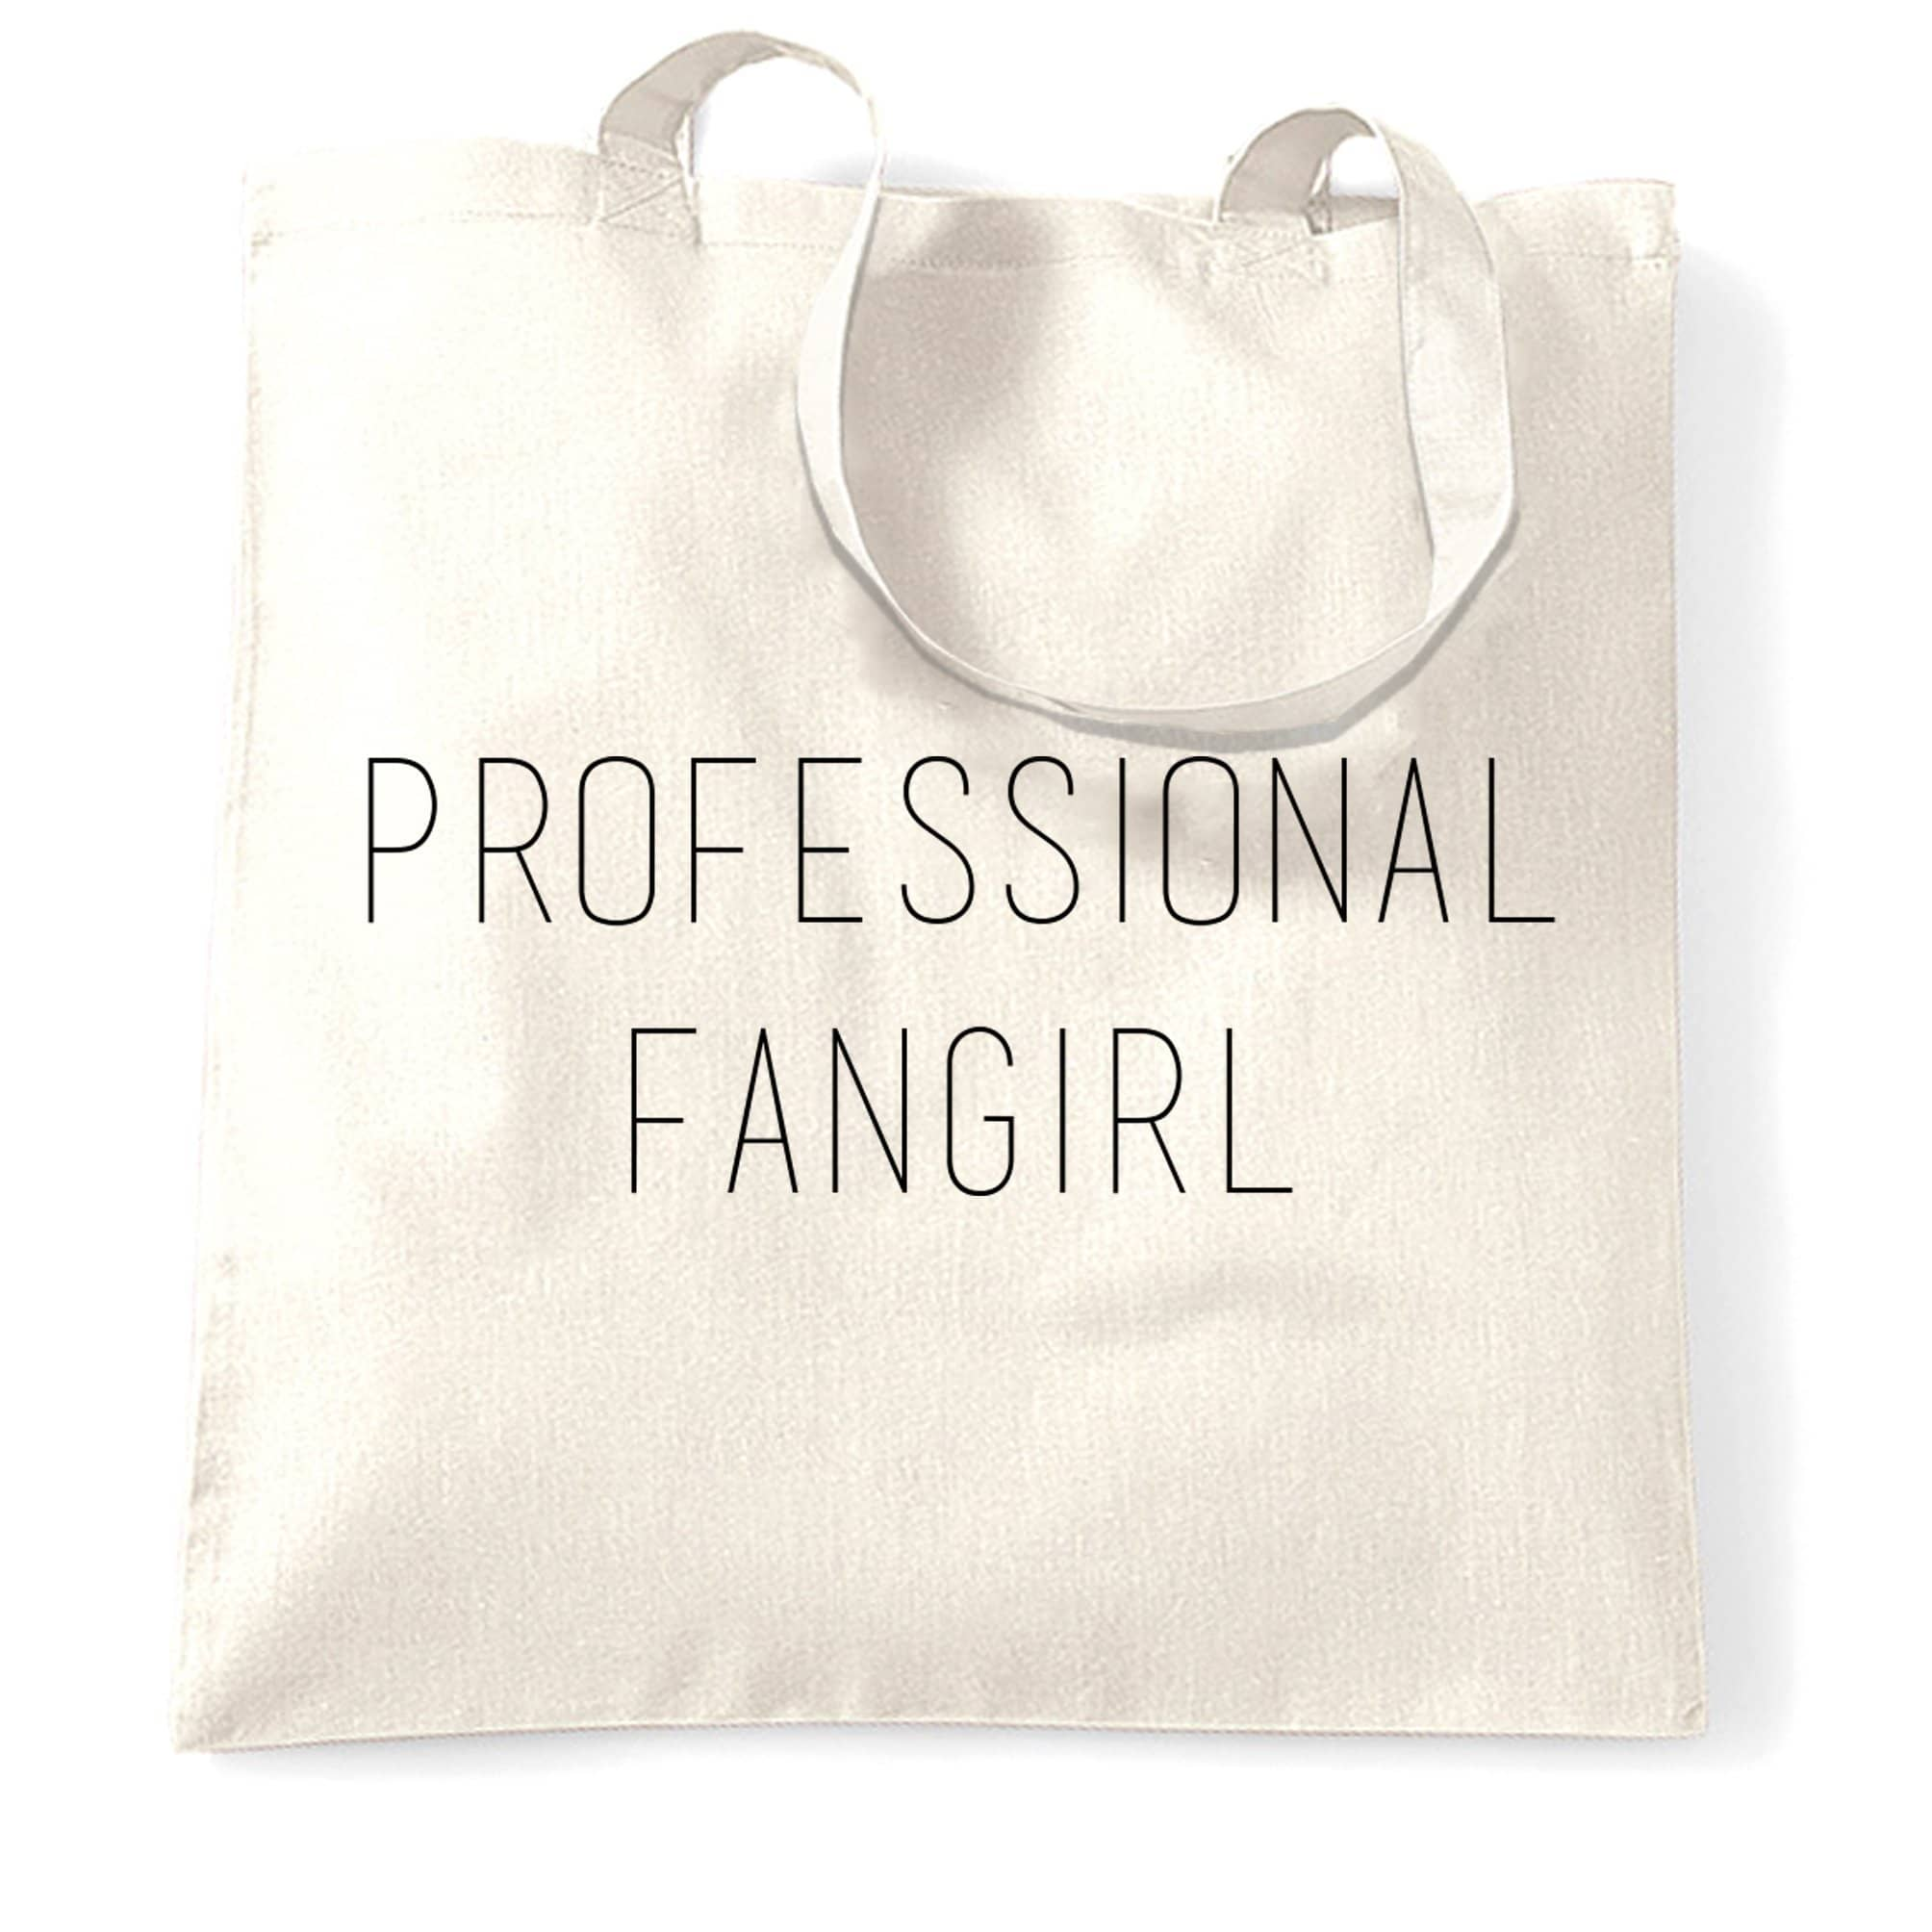 Novelty Joke Slogan Tote Bag Professional Fangirl